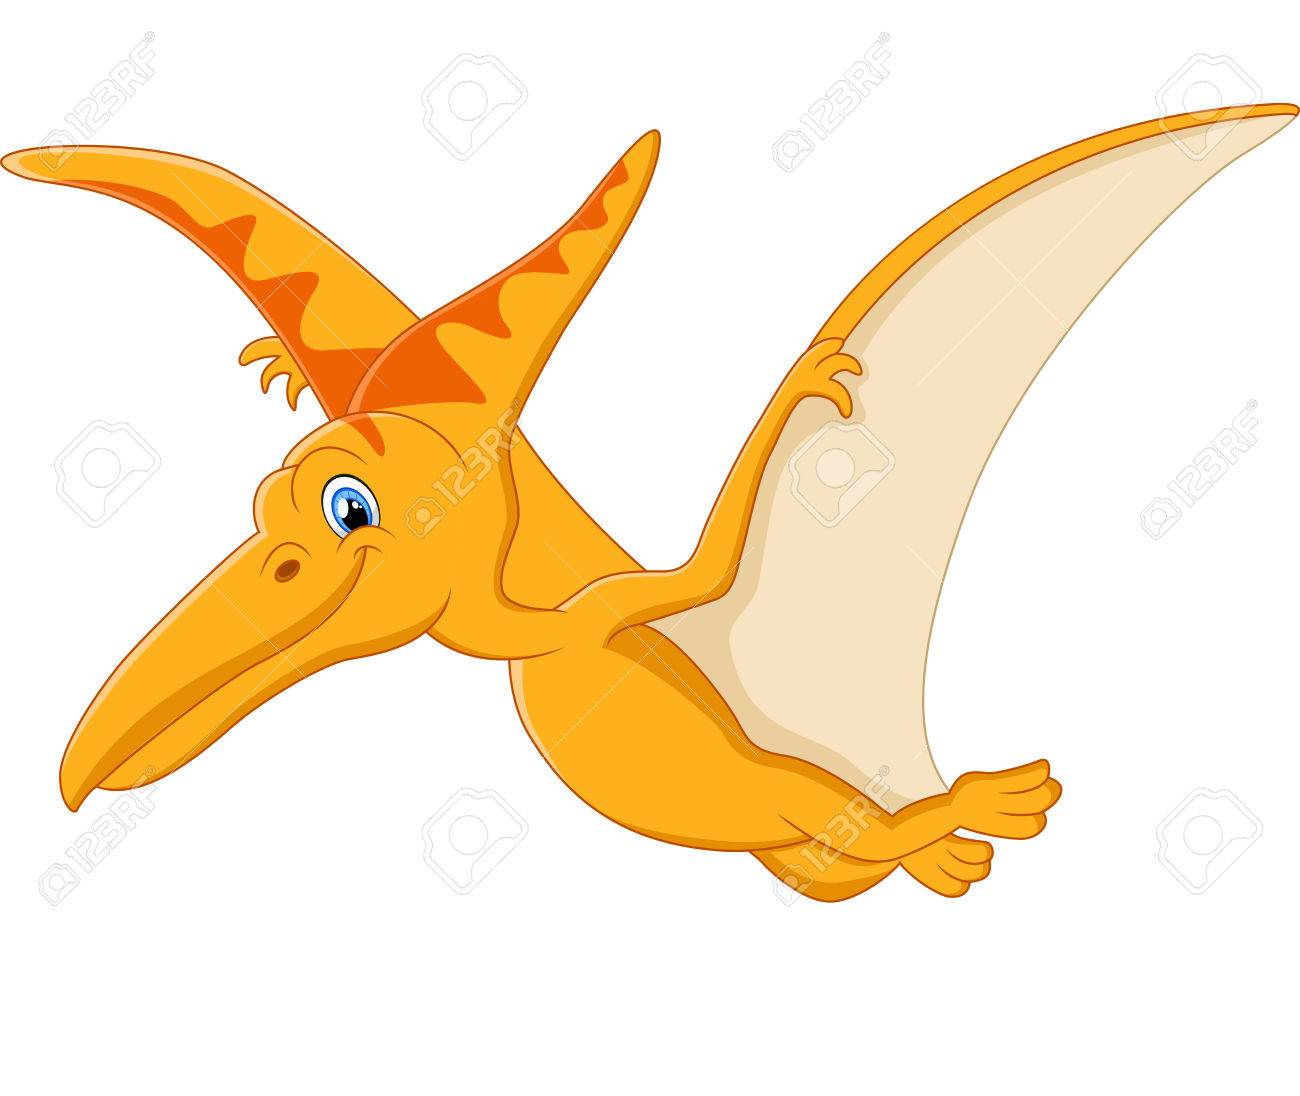 cute pterodactyl cartoon royalty free cliparts vectors and stock rh 123rf com Quetzalcoatlus and Pterodactyl Clip Art Flying Dinosaurs Pterodactyl